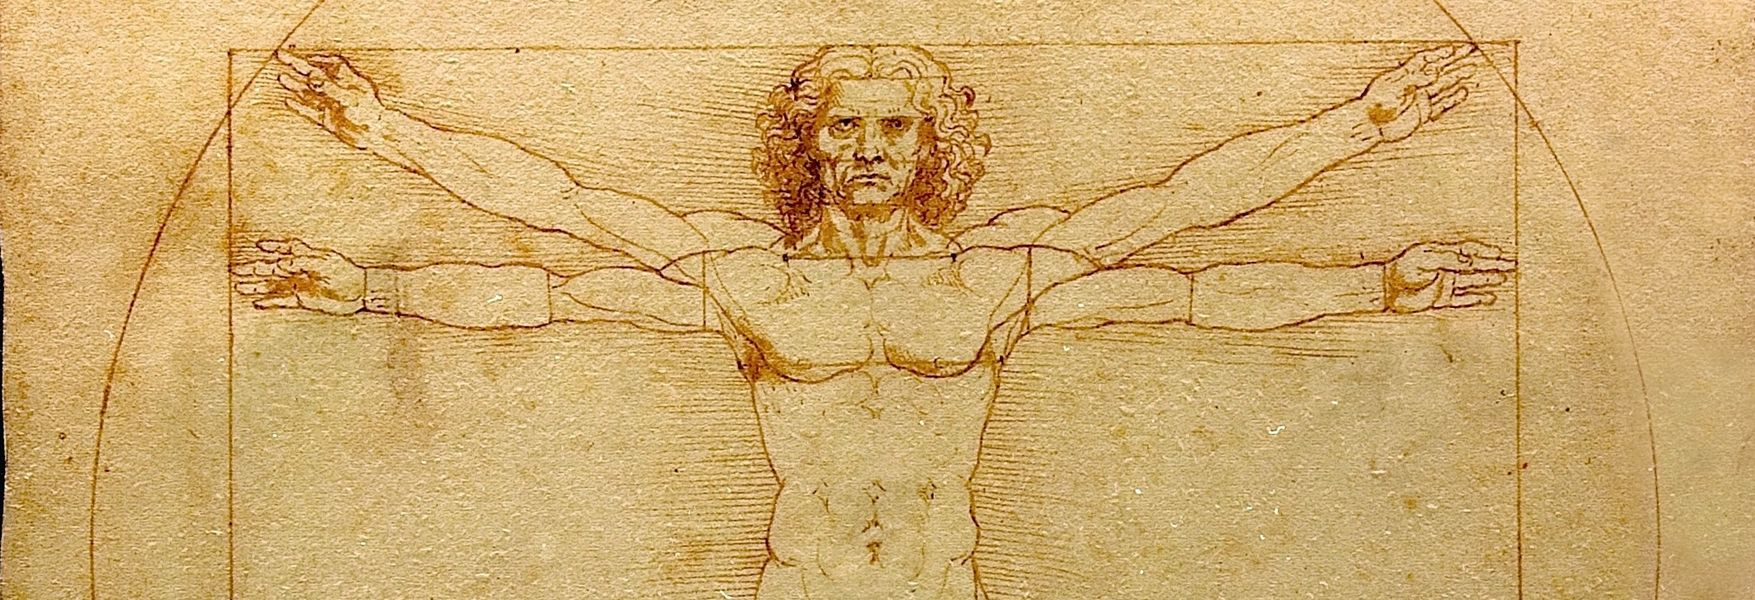 Leonardo's Footprint: From Engineering to Anatomy - OpenMind